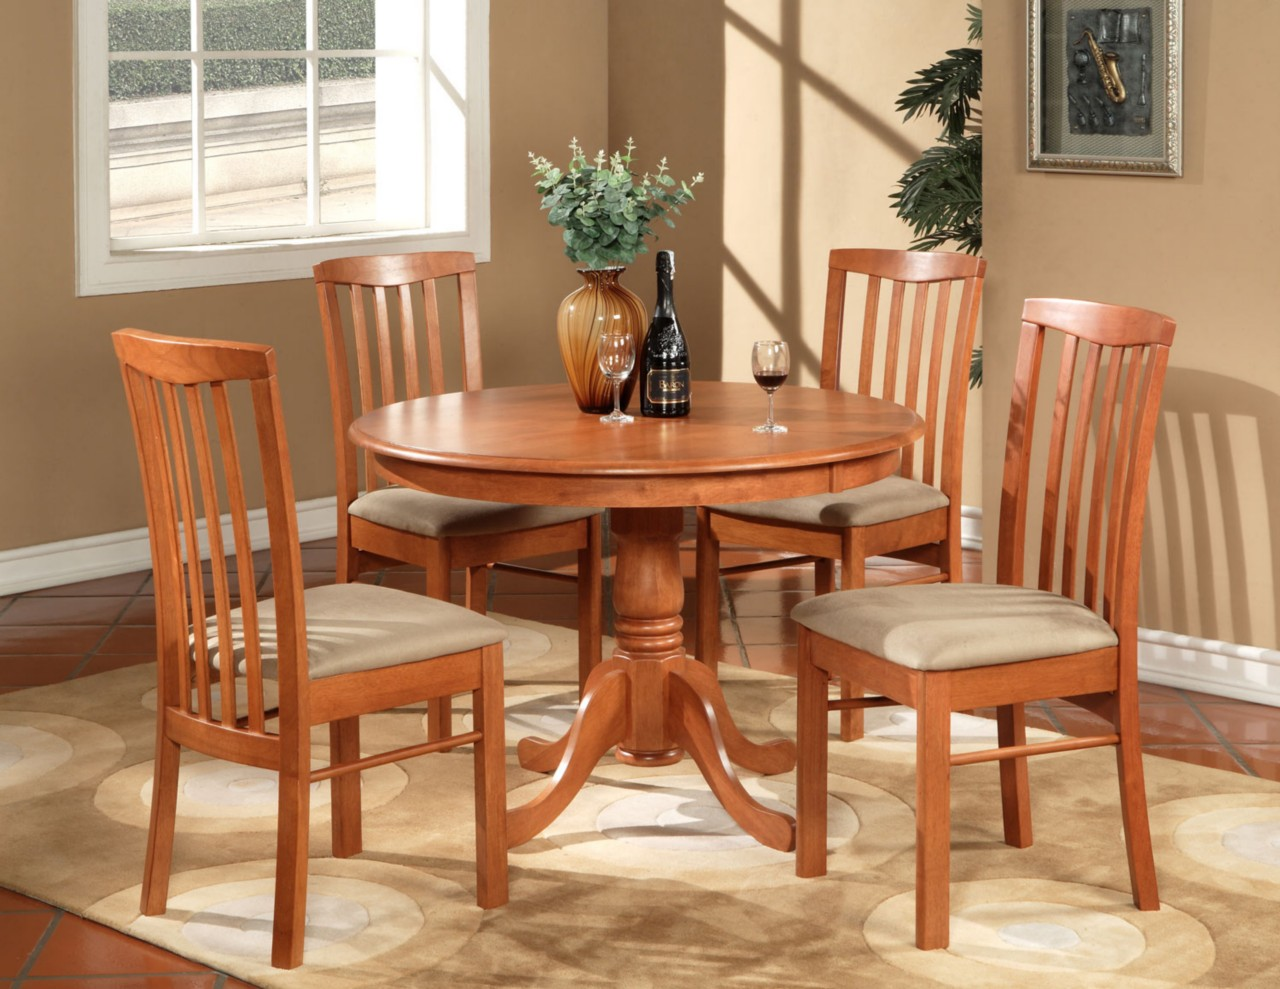 Magnificent Round Kitchen Table and Chairs Sets 1280 x 989 · 237 kB · jpeg